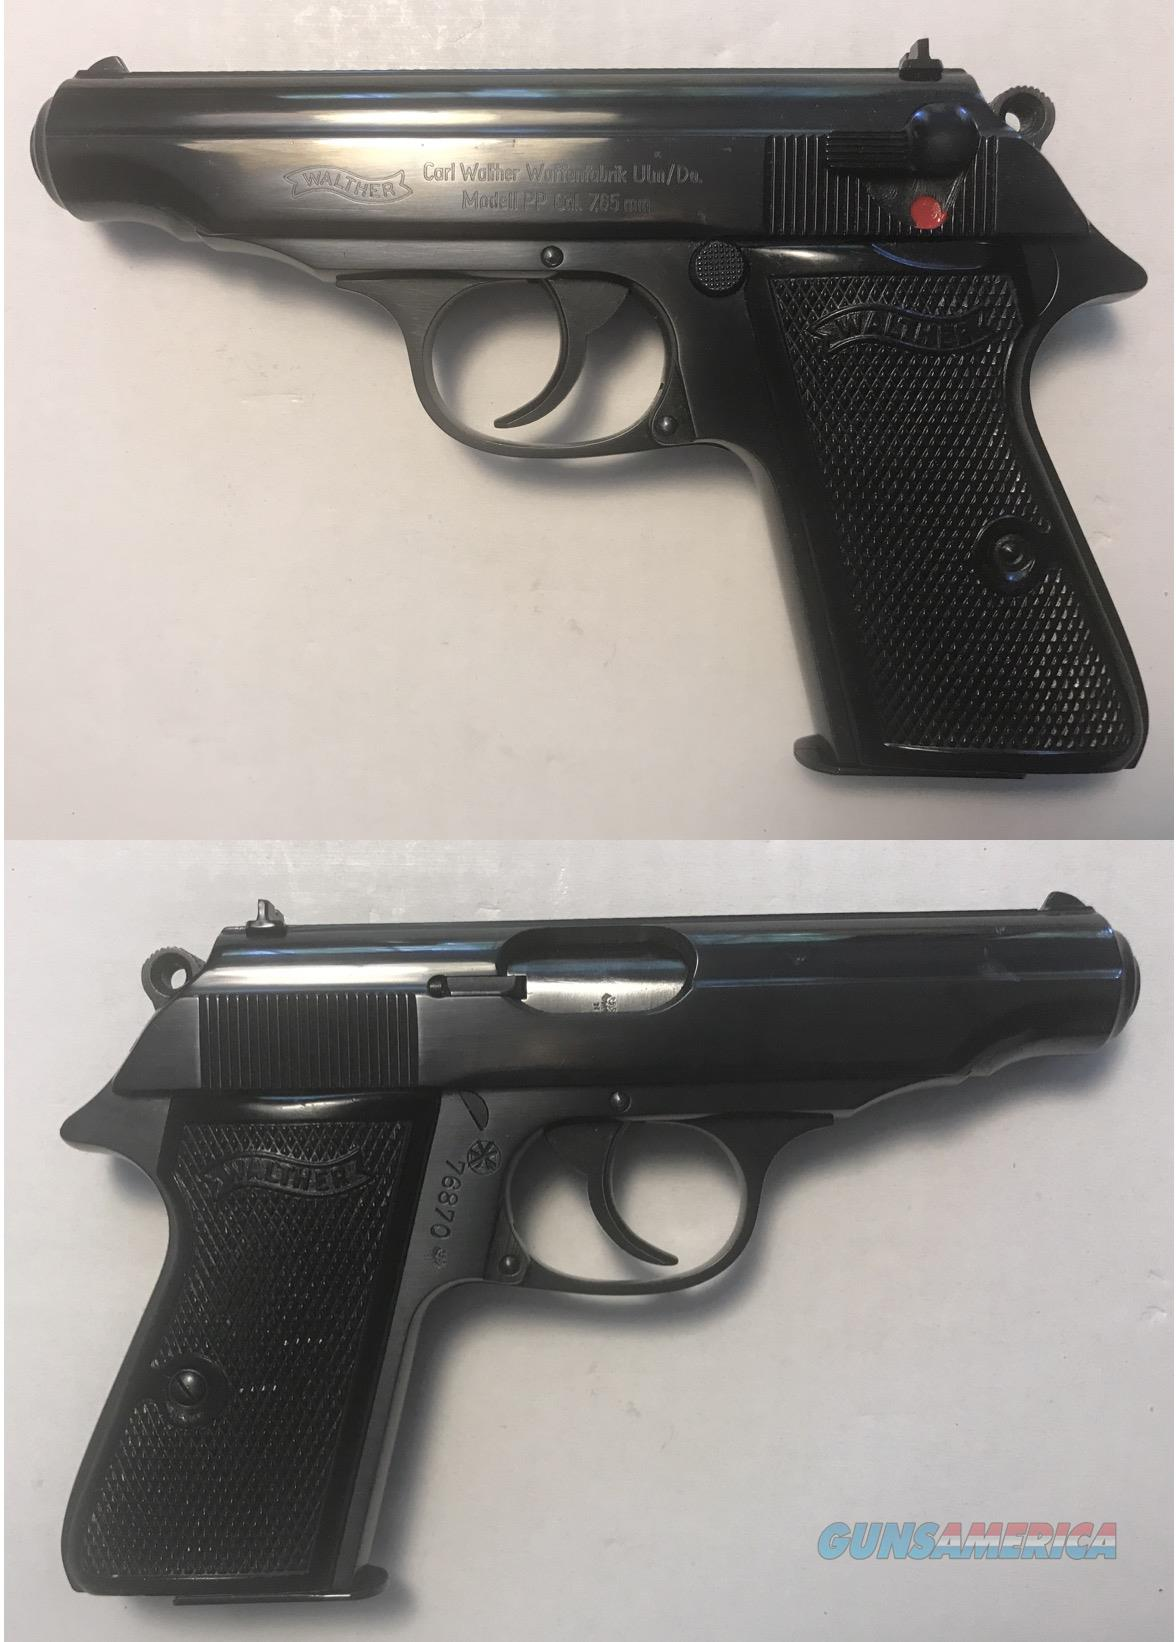 German Walther PP 7.65mm .32acp Mfg. 1958-59 Curio & Relic  Guns > Pistols > Walther Pistols > Post WWII > PPK Series